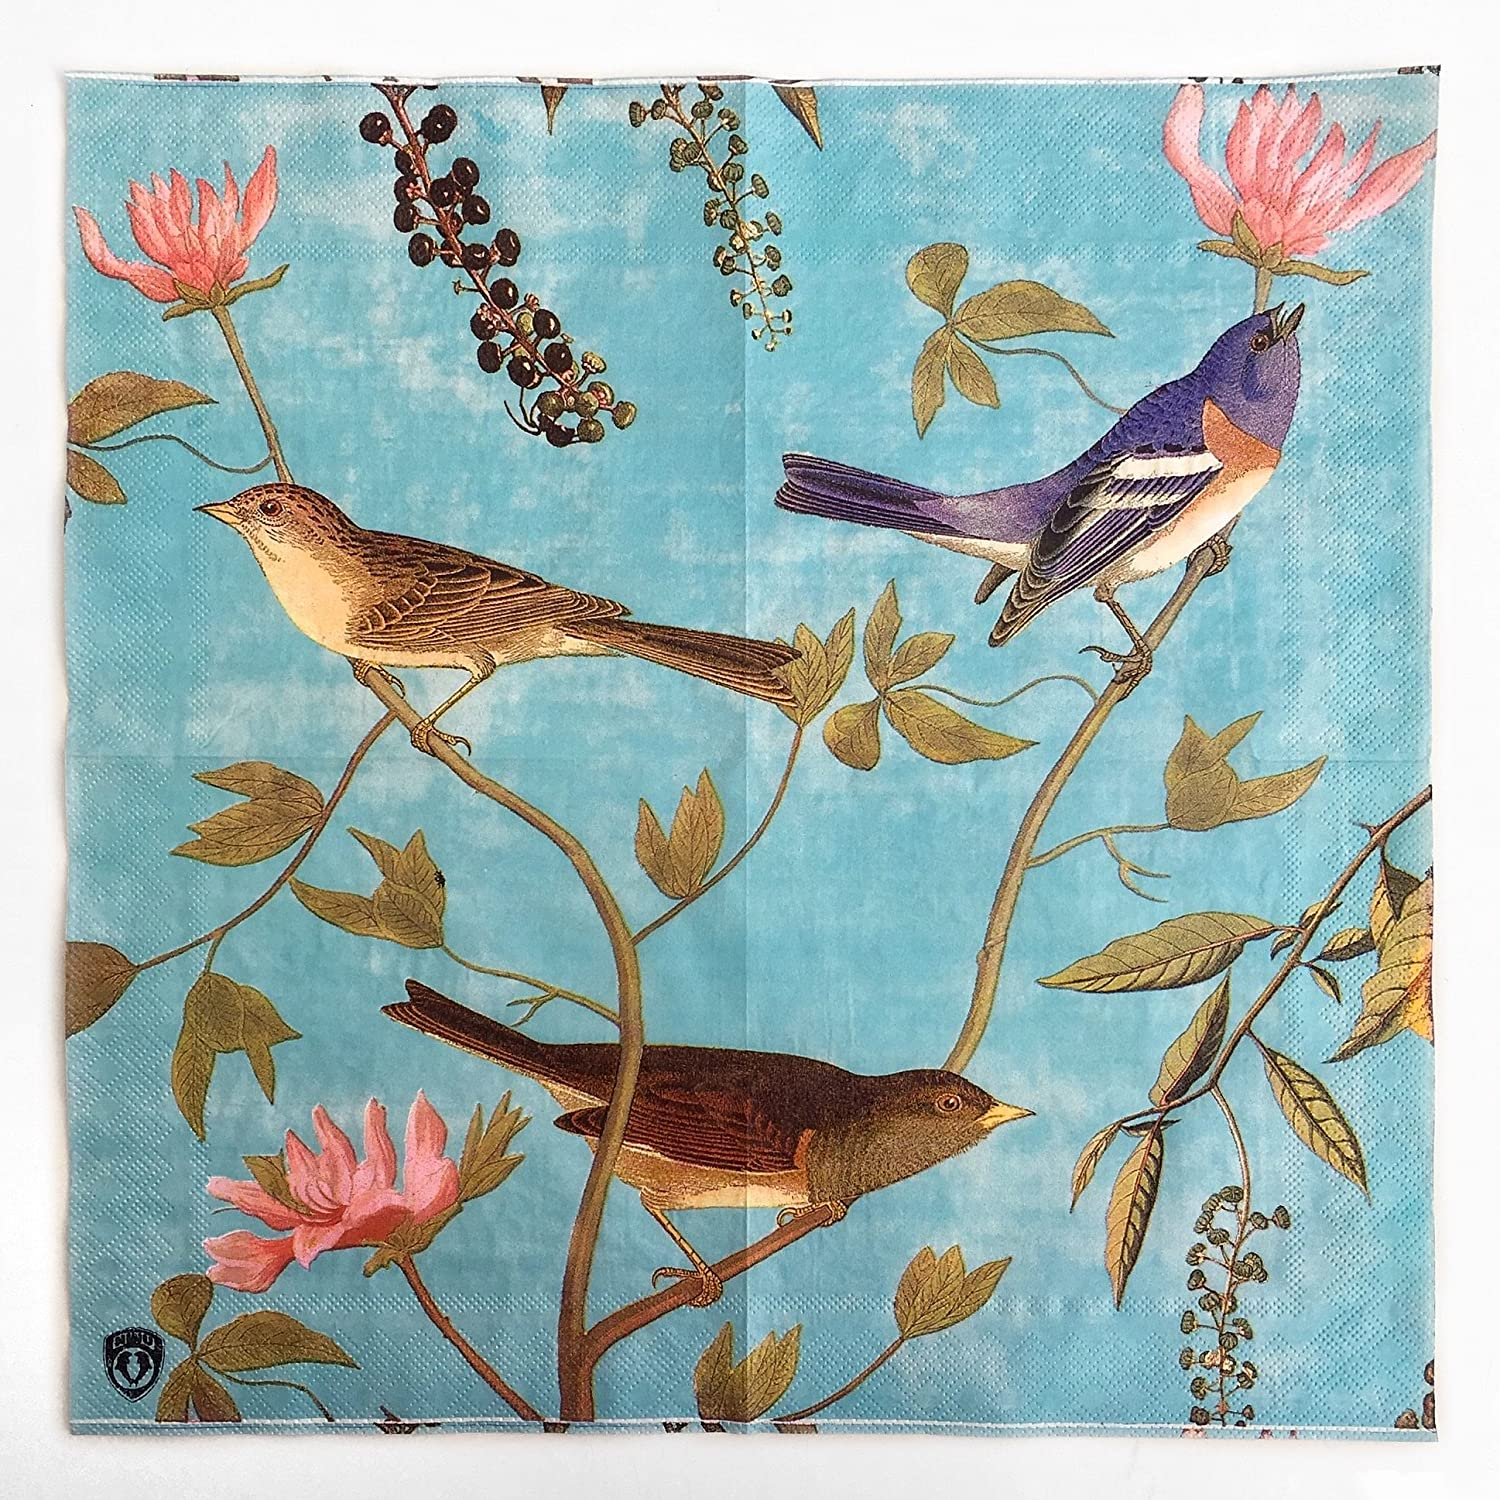 Colored Paper Napkins, 20 Count Shabby Chic Napkins for Wedding, Dinner Tea Party Shower (Floral Birds Retro Vine)